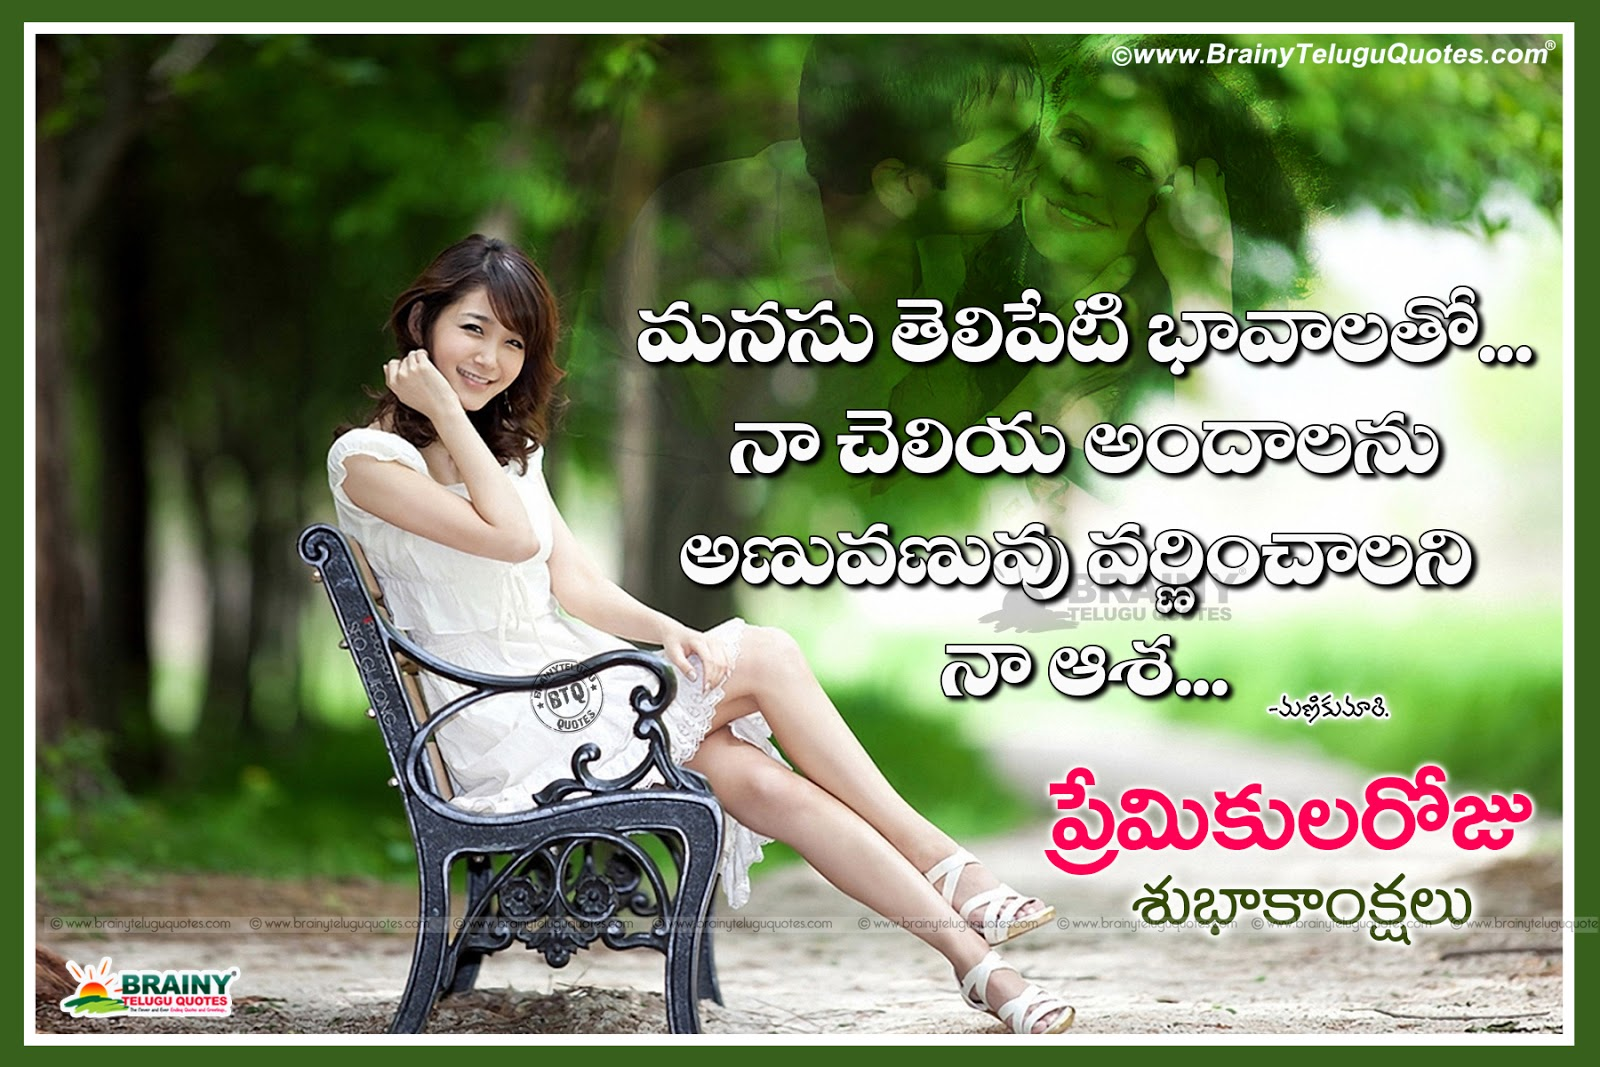 valentines day quotes for girlfriend in telugu - Romantic love messages quotes kavithalu for Valentines day